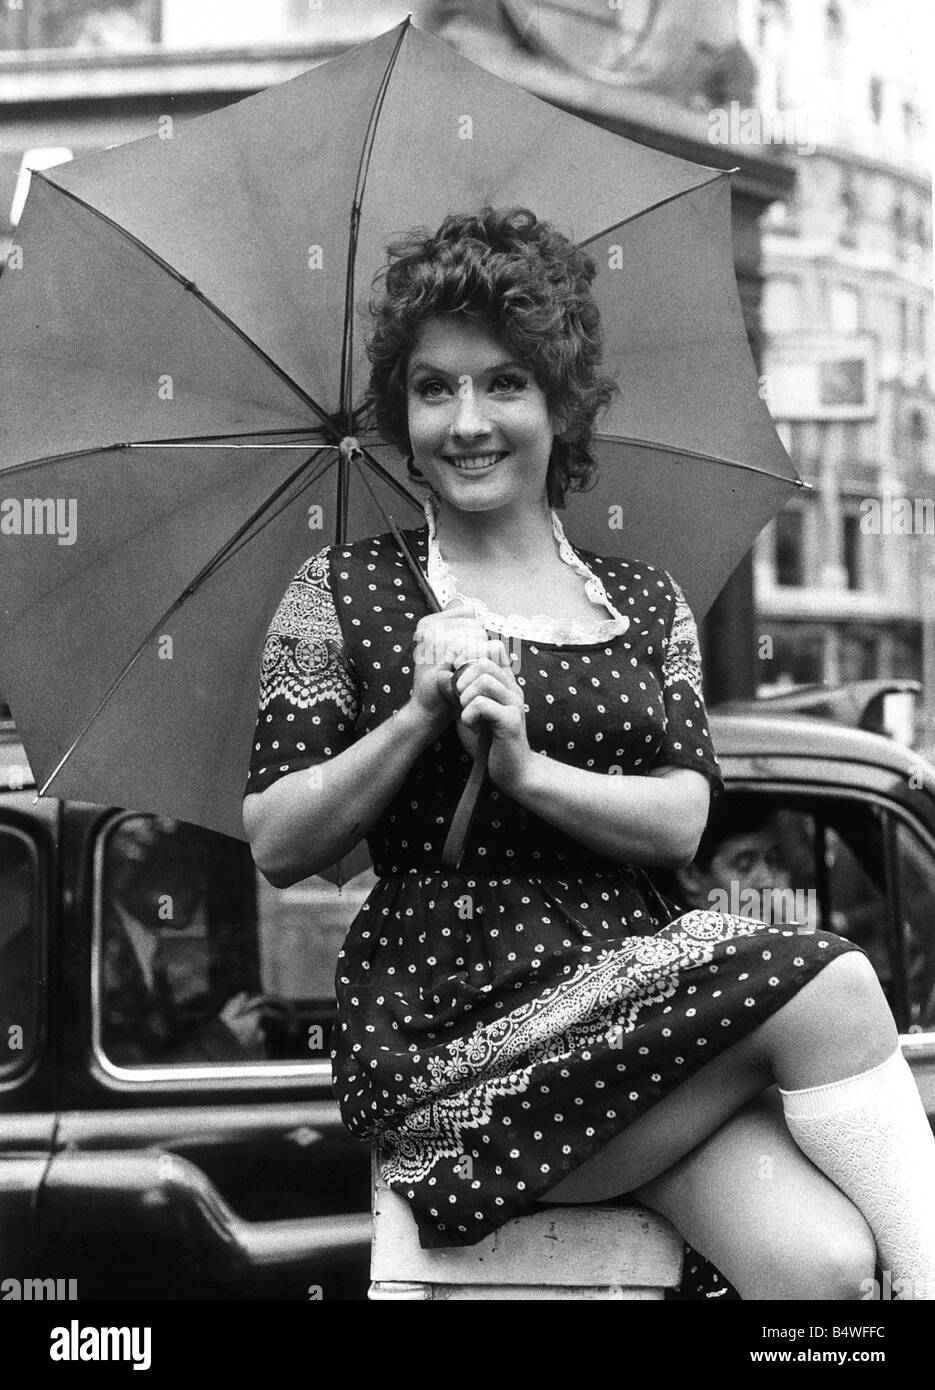 Deborah Watling (born 1948) Deborah Watling (born 1948) new pictures